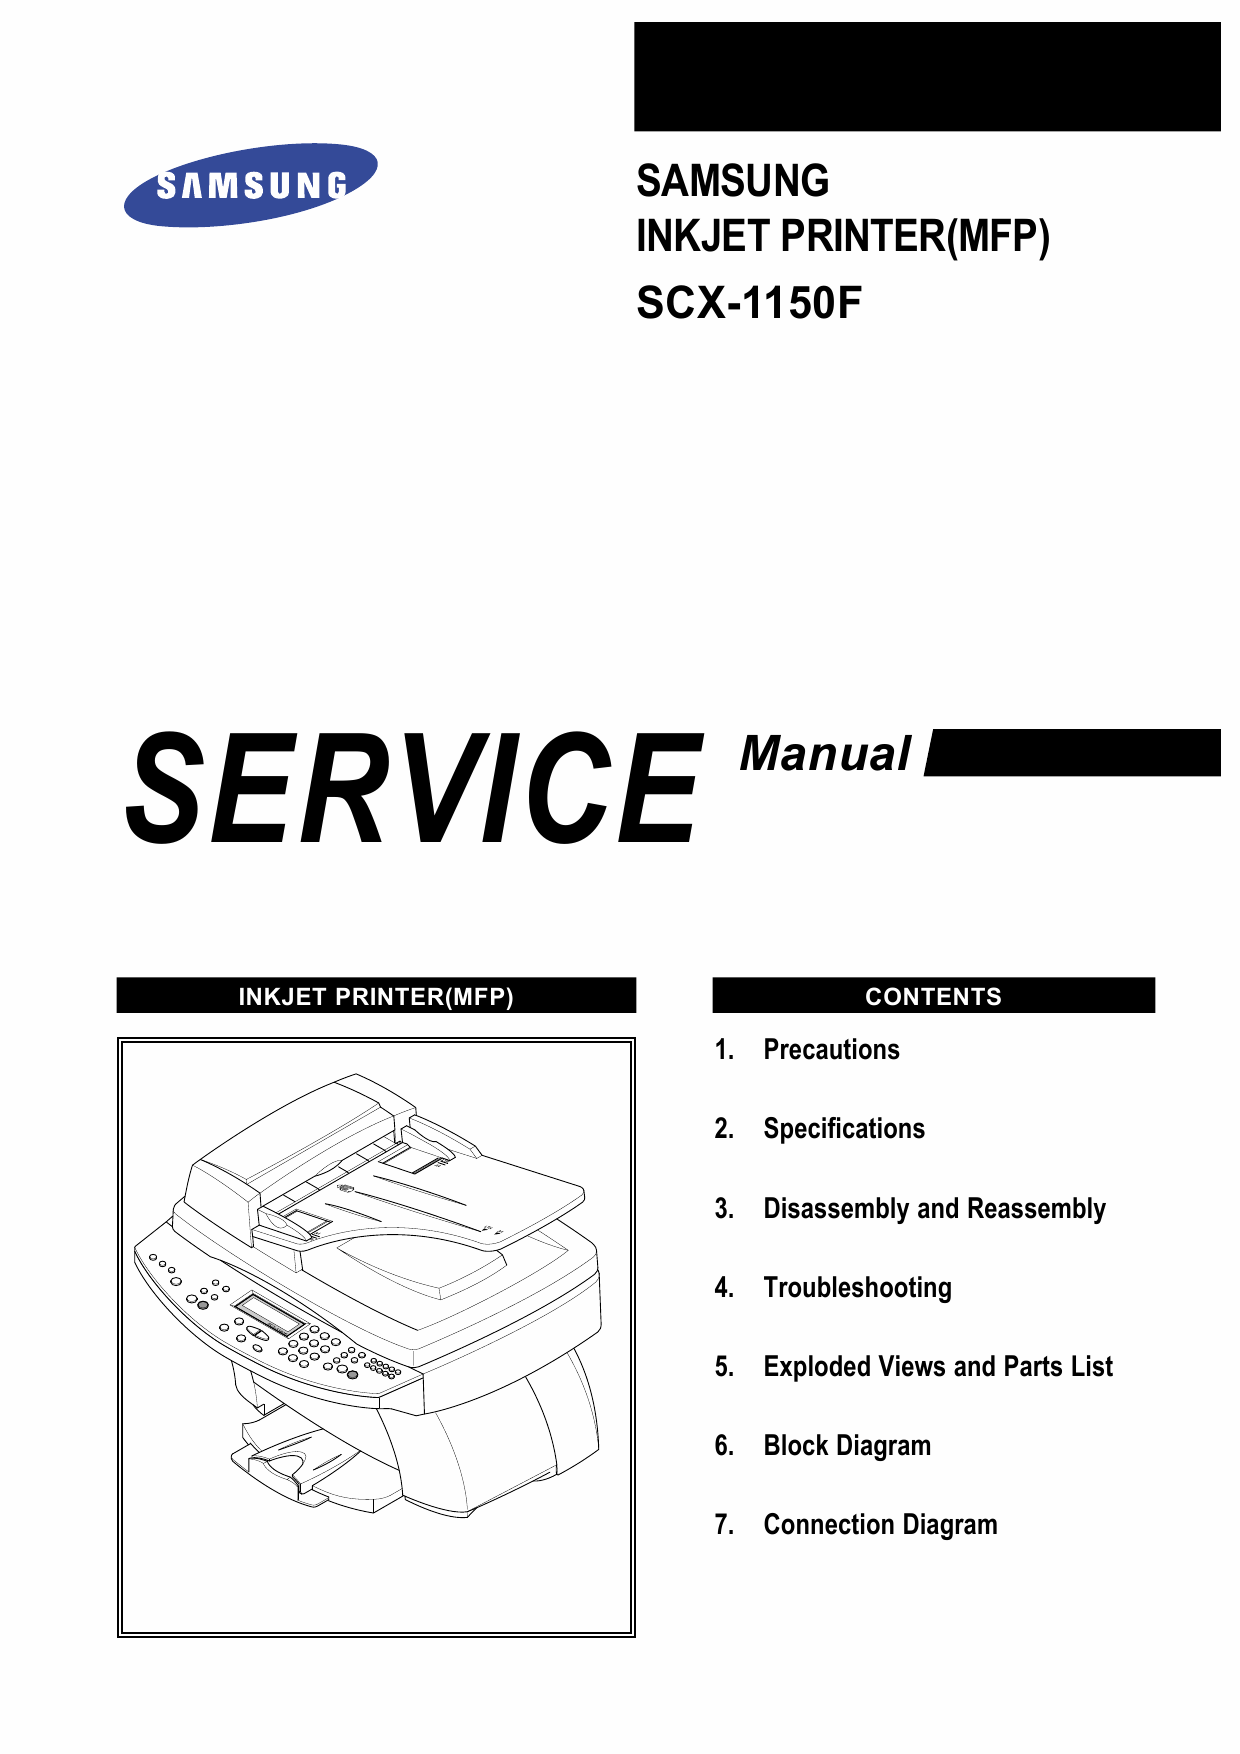 Samsung InkJet-MFP SCX-1150 Parts and Service Manual-1